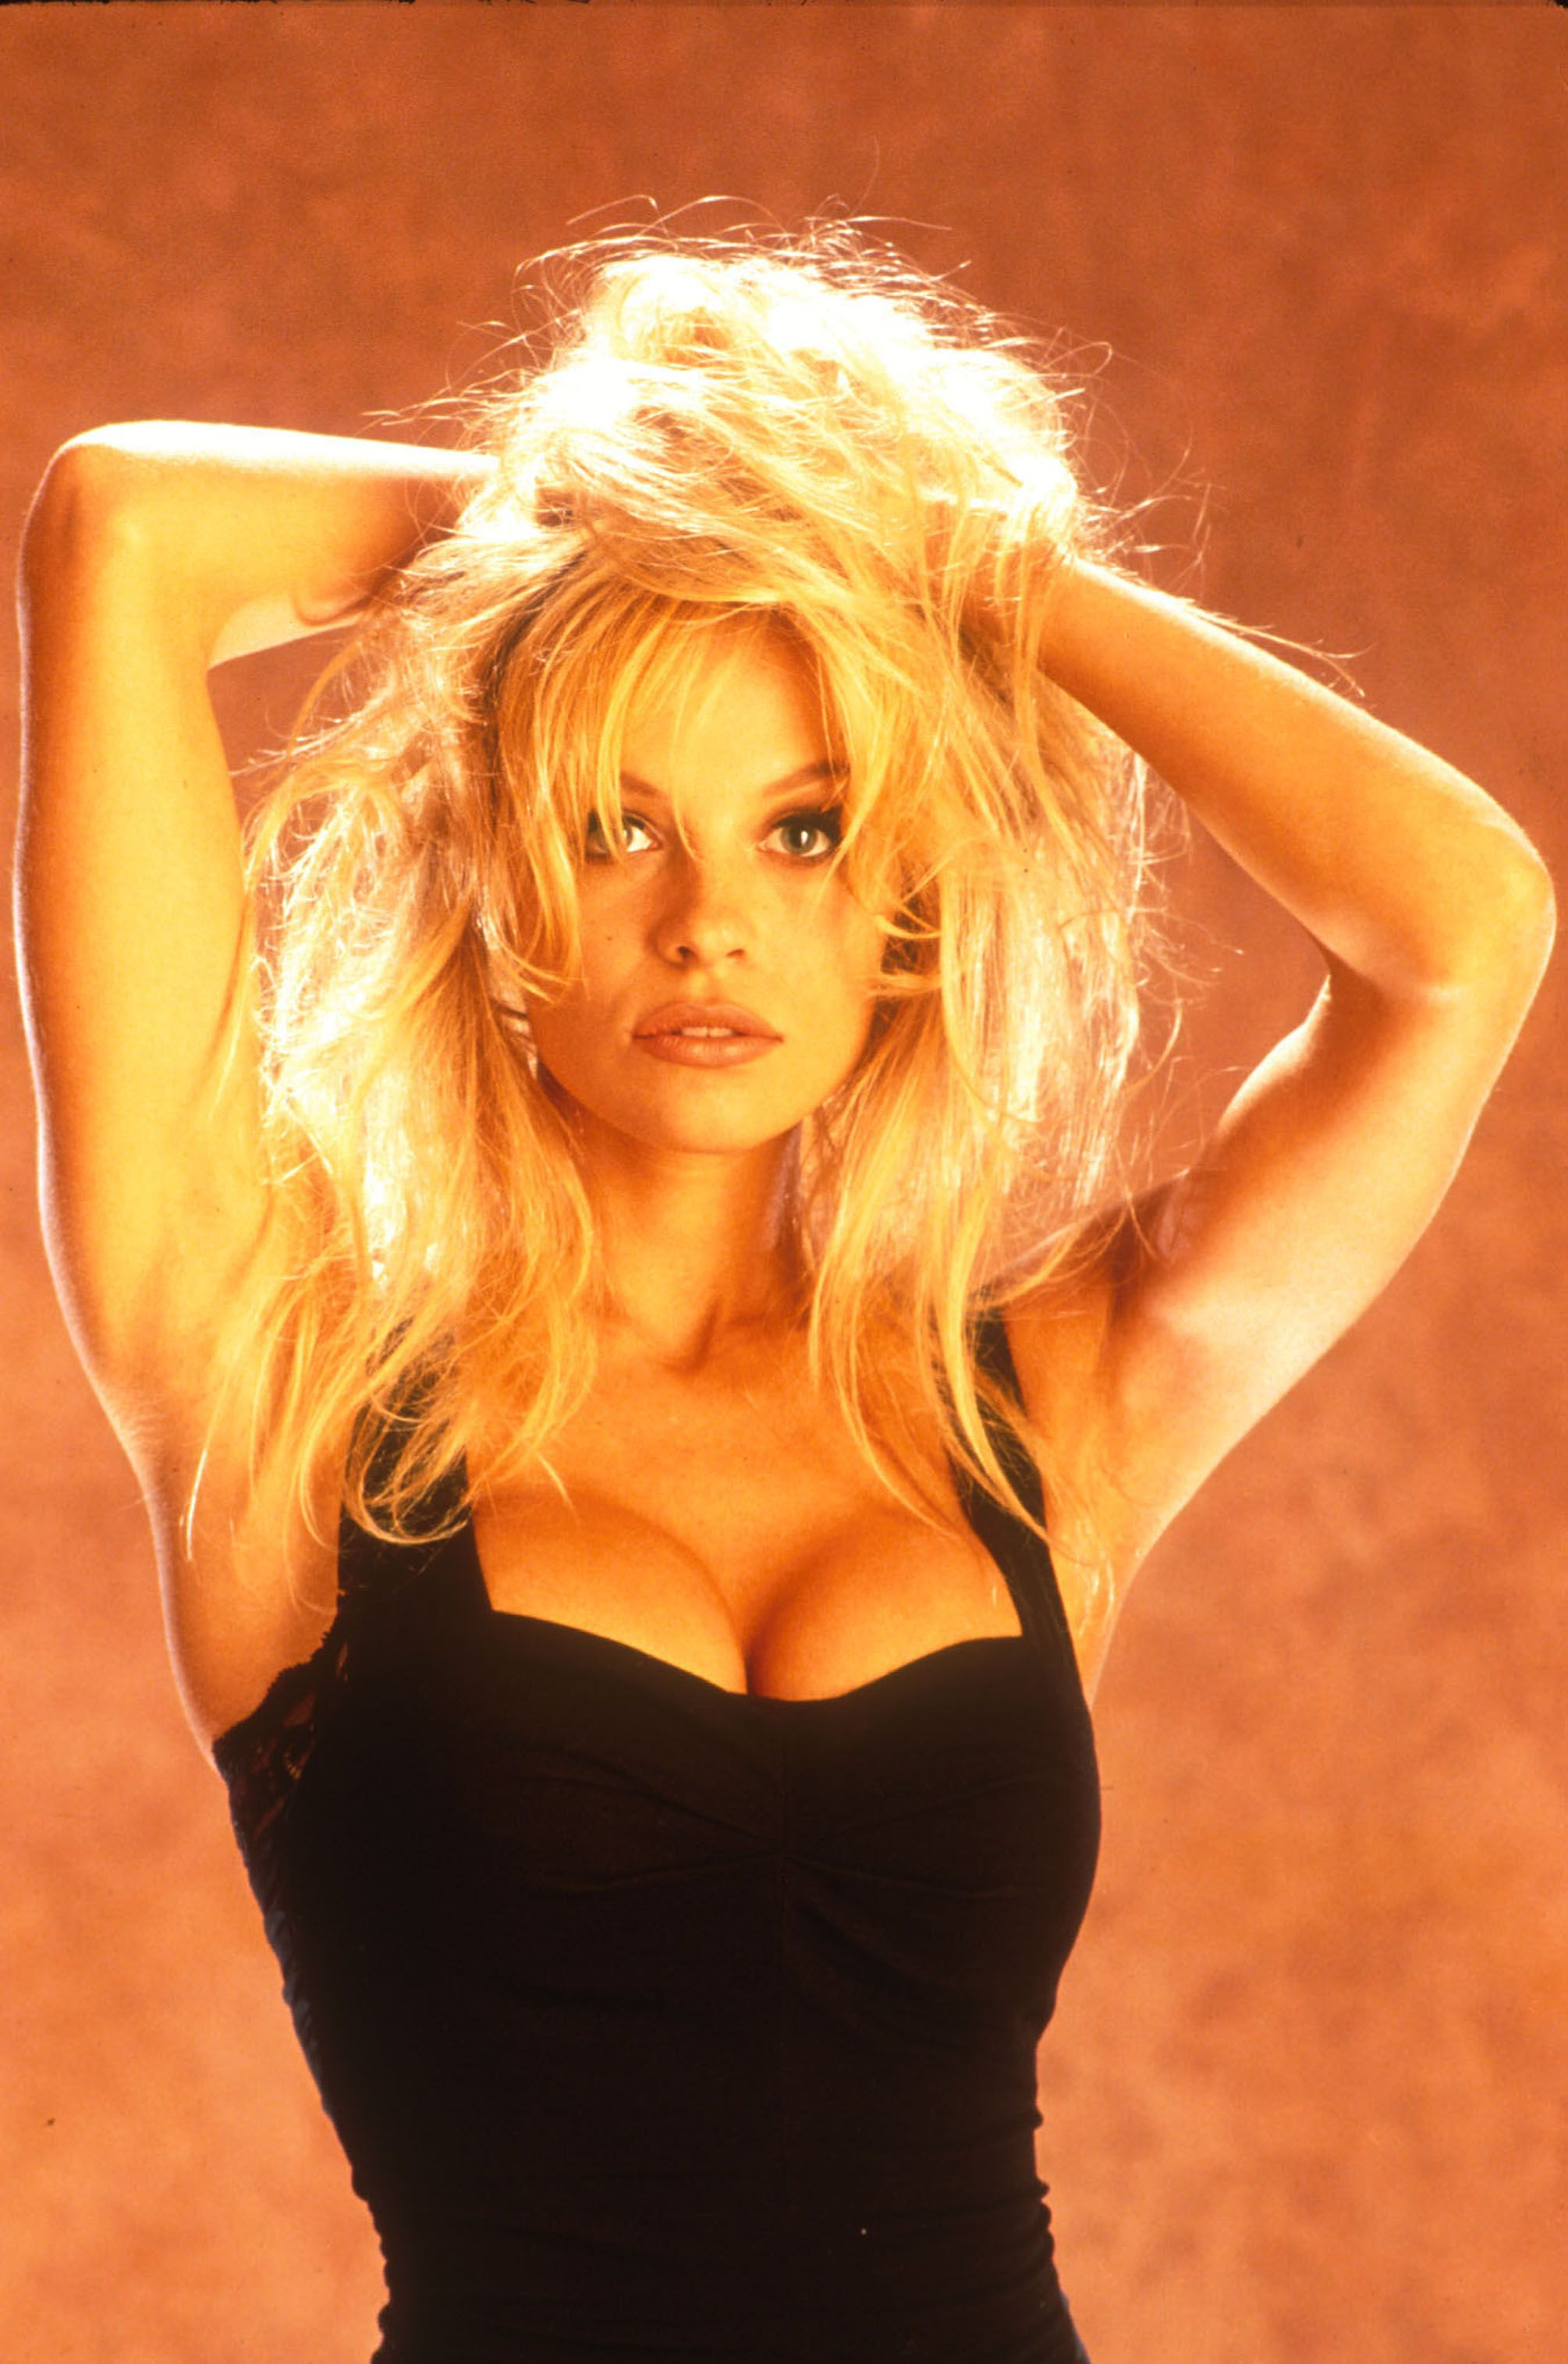 Sideboobs Pamela Anderson nudes (66 foto and video), Sexy, Hot, Twitter, bra 2018